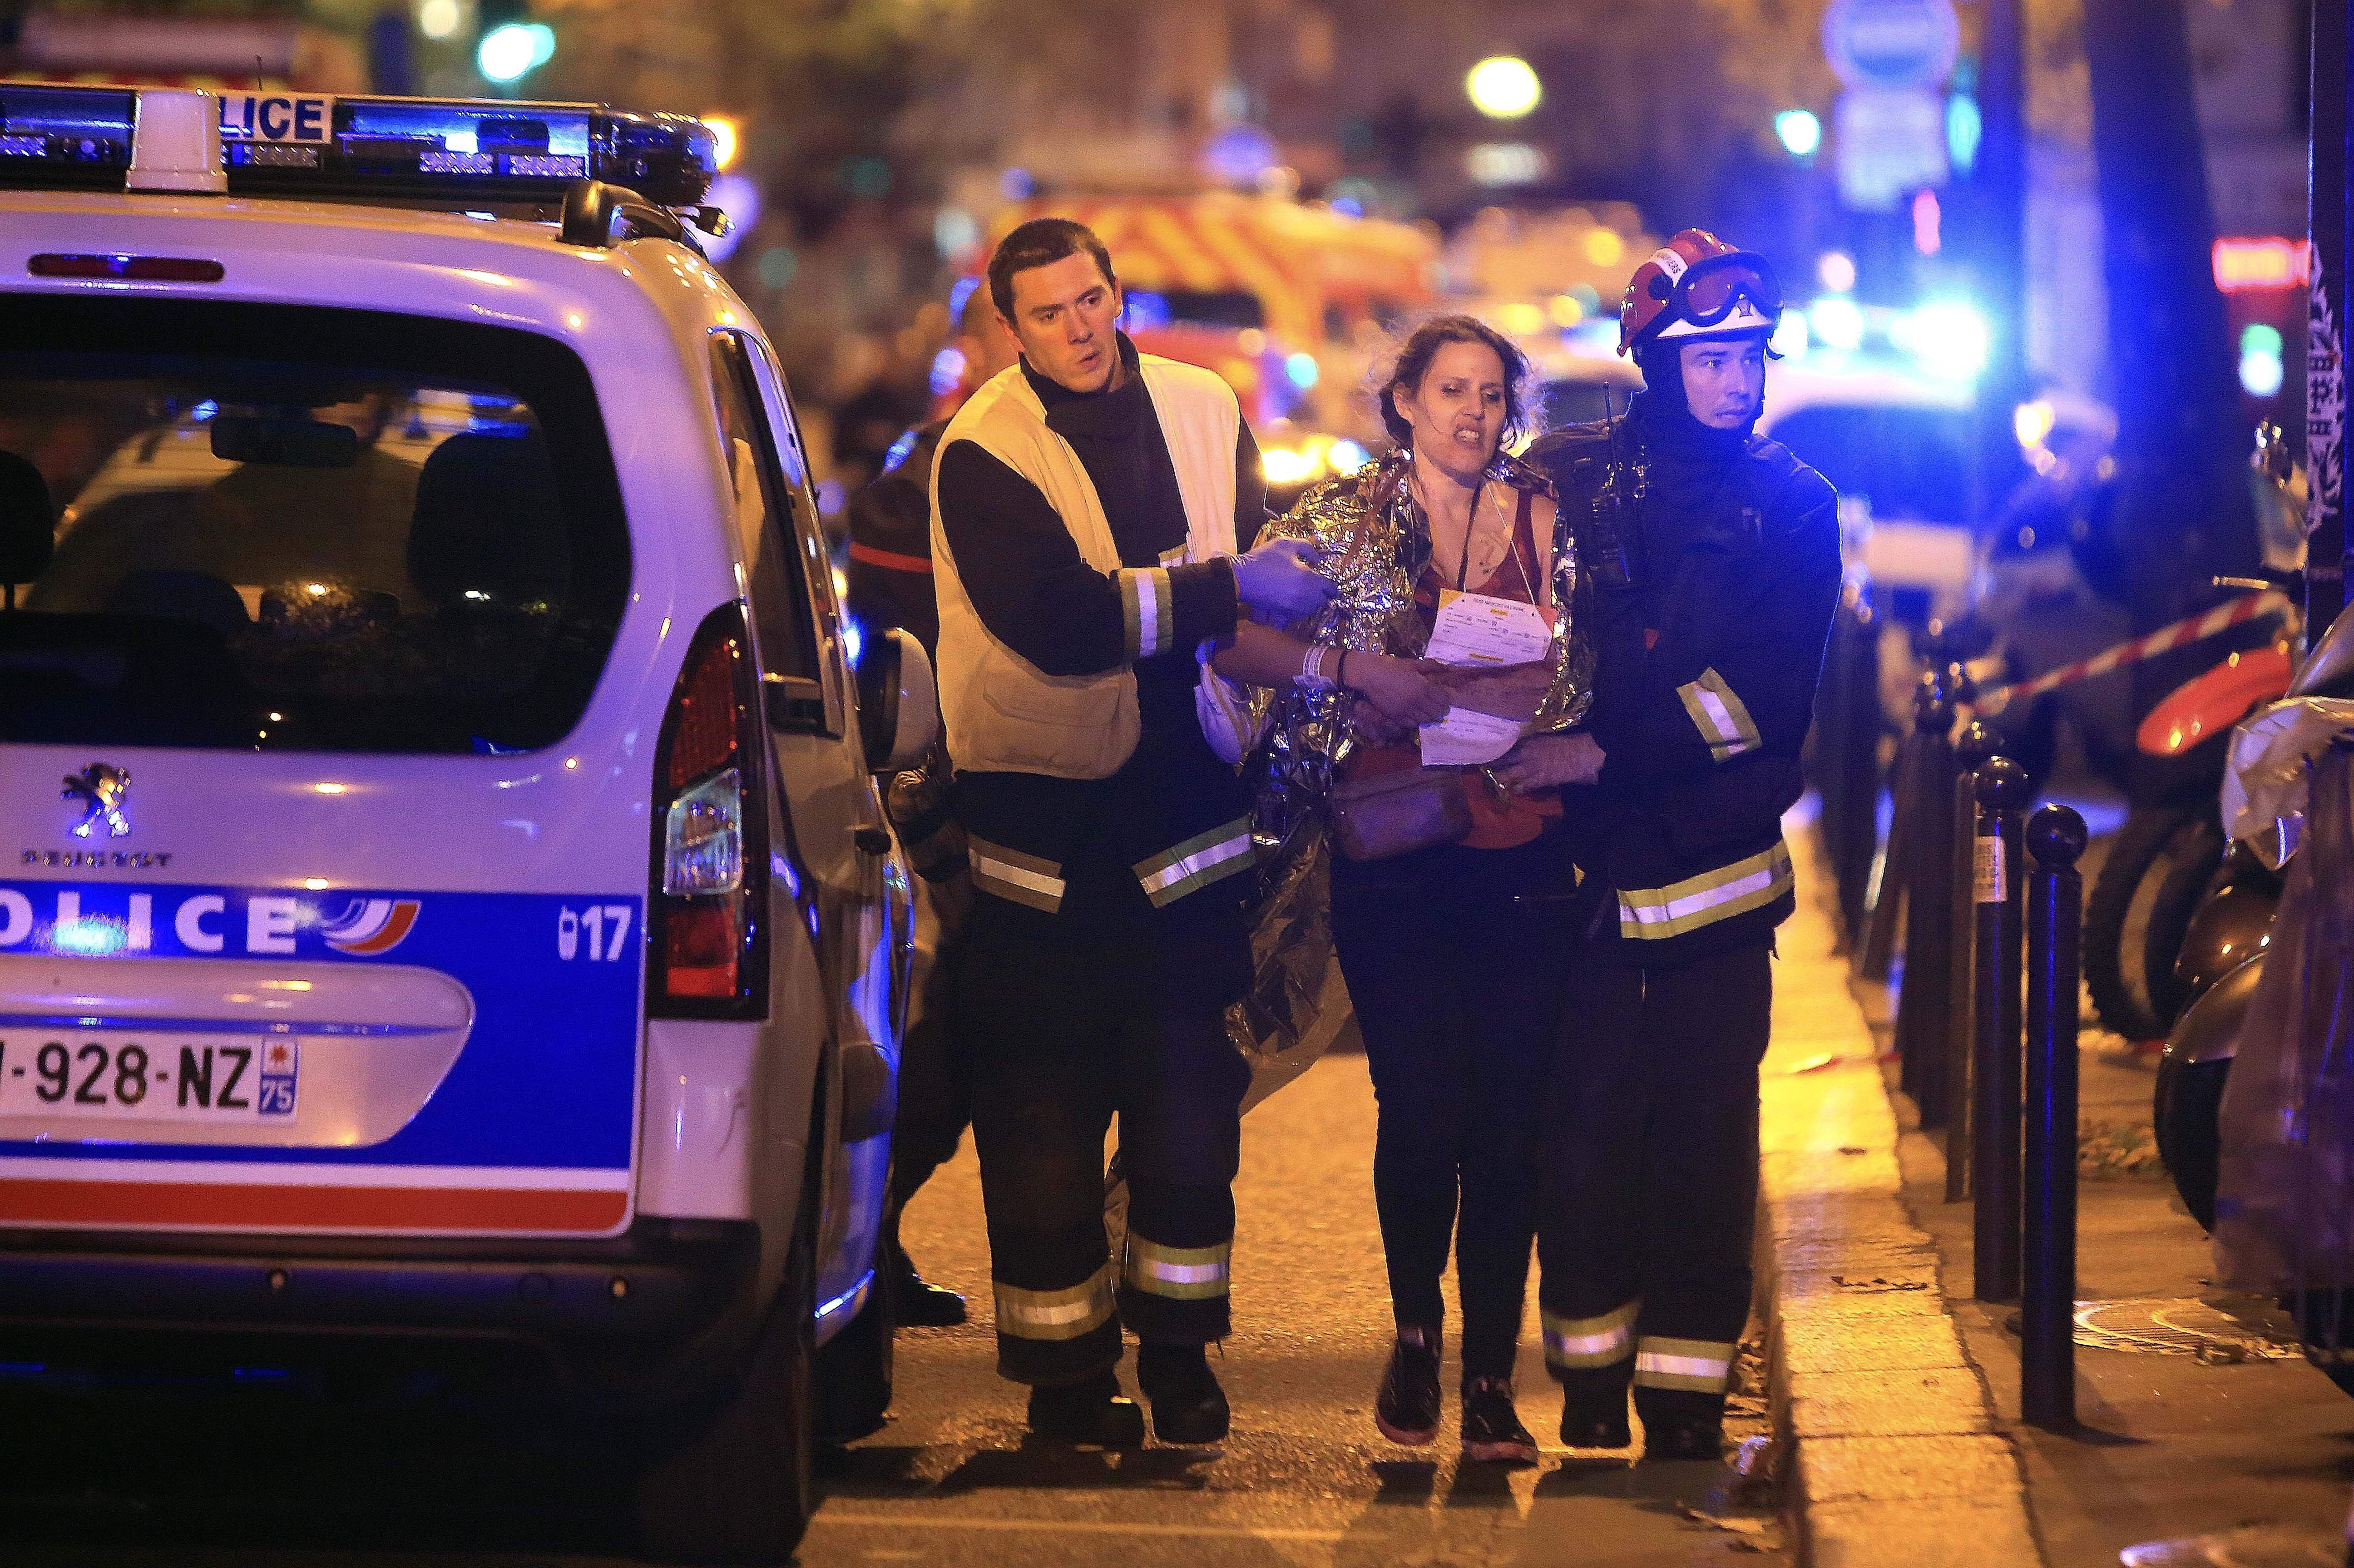 Rescue workers help a woman after a shooting, outside the Bataclan theater in Paris, Friday Nov. 13, 2015.